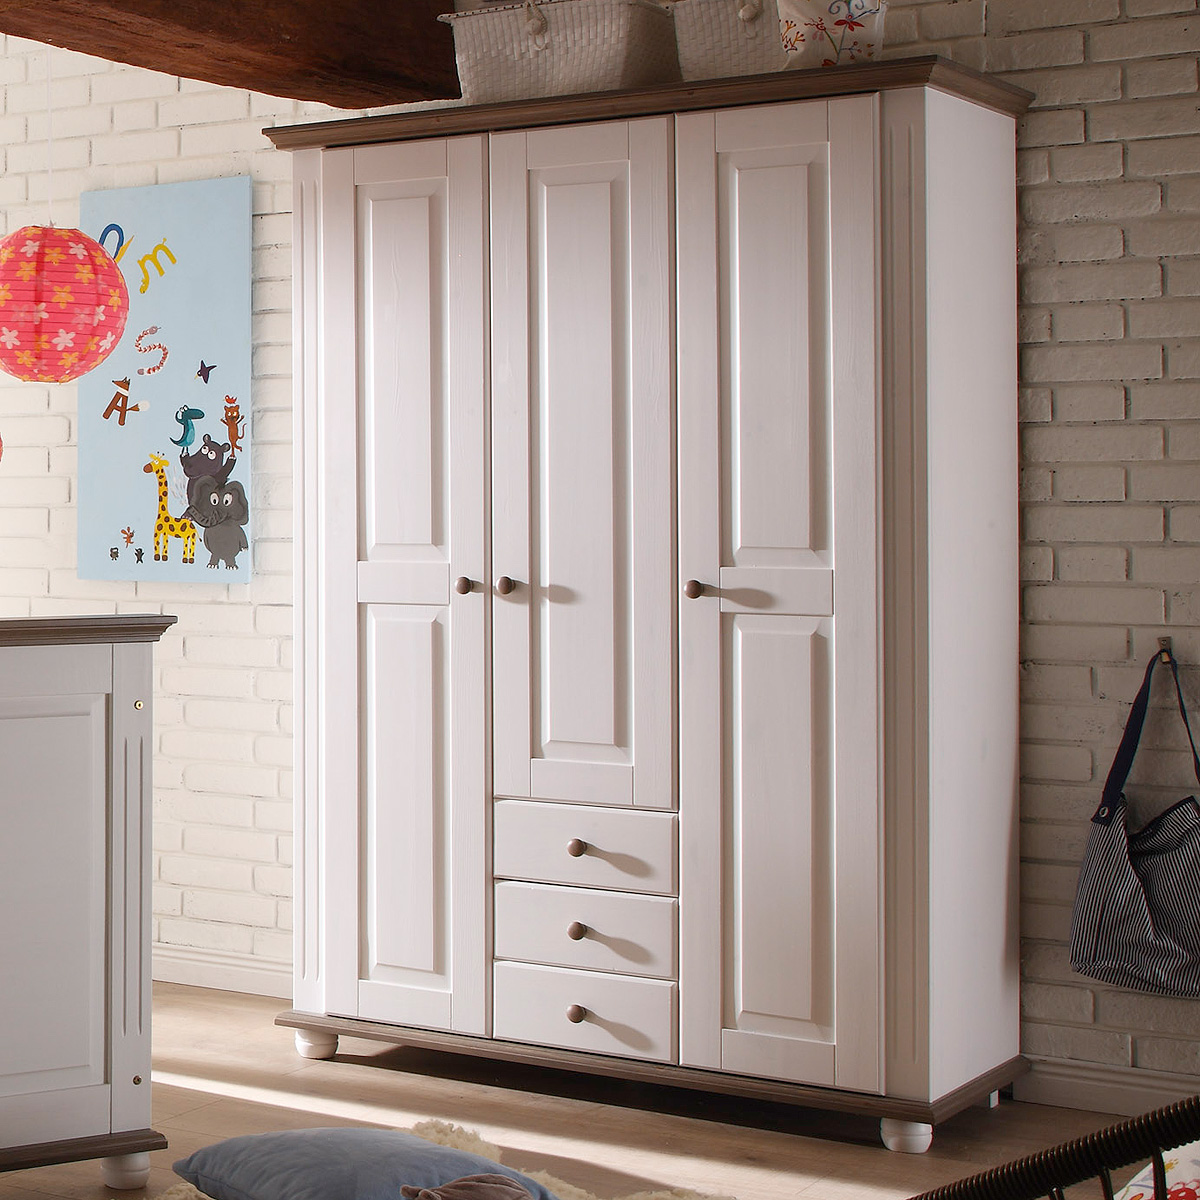 kleiderschrank laura kinderzimmer schrank kiefer massiv in wei und lava 130 cm ebay. Black Bedroom Furniture Sets. Home Design Ideas